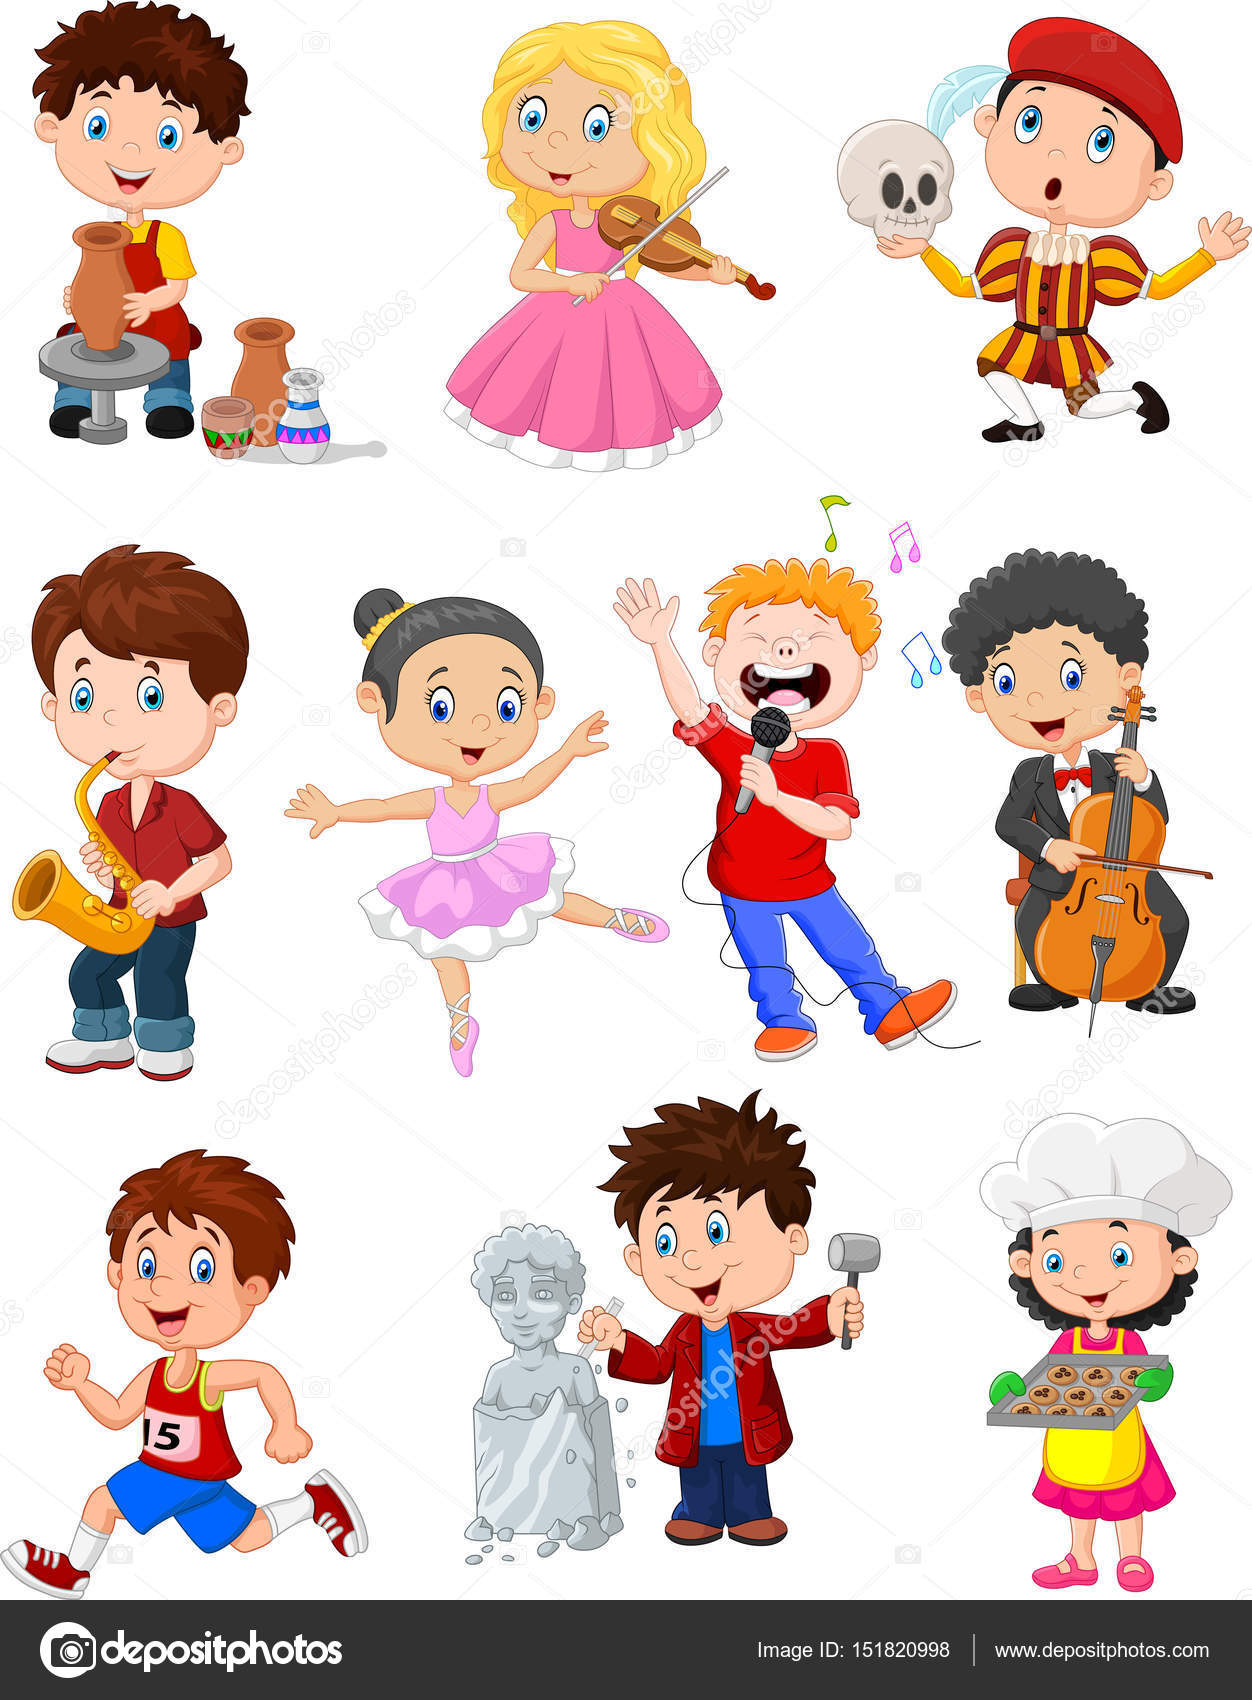 depositphotos_151820998-stock-illustration-kids-engaged-in-different-hobbies.jpg